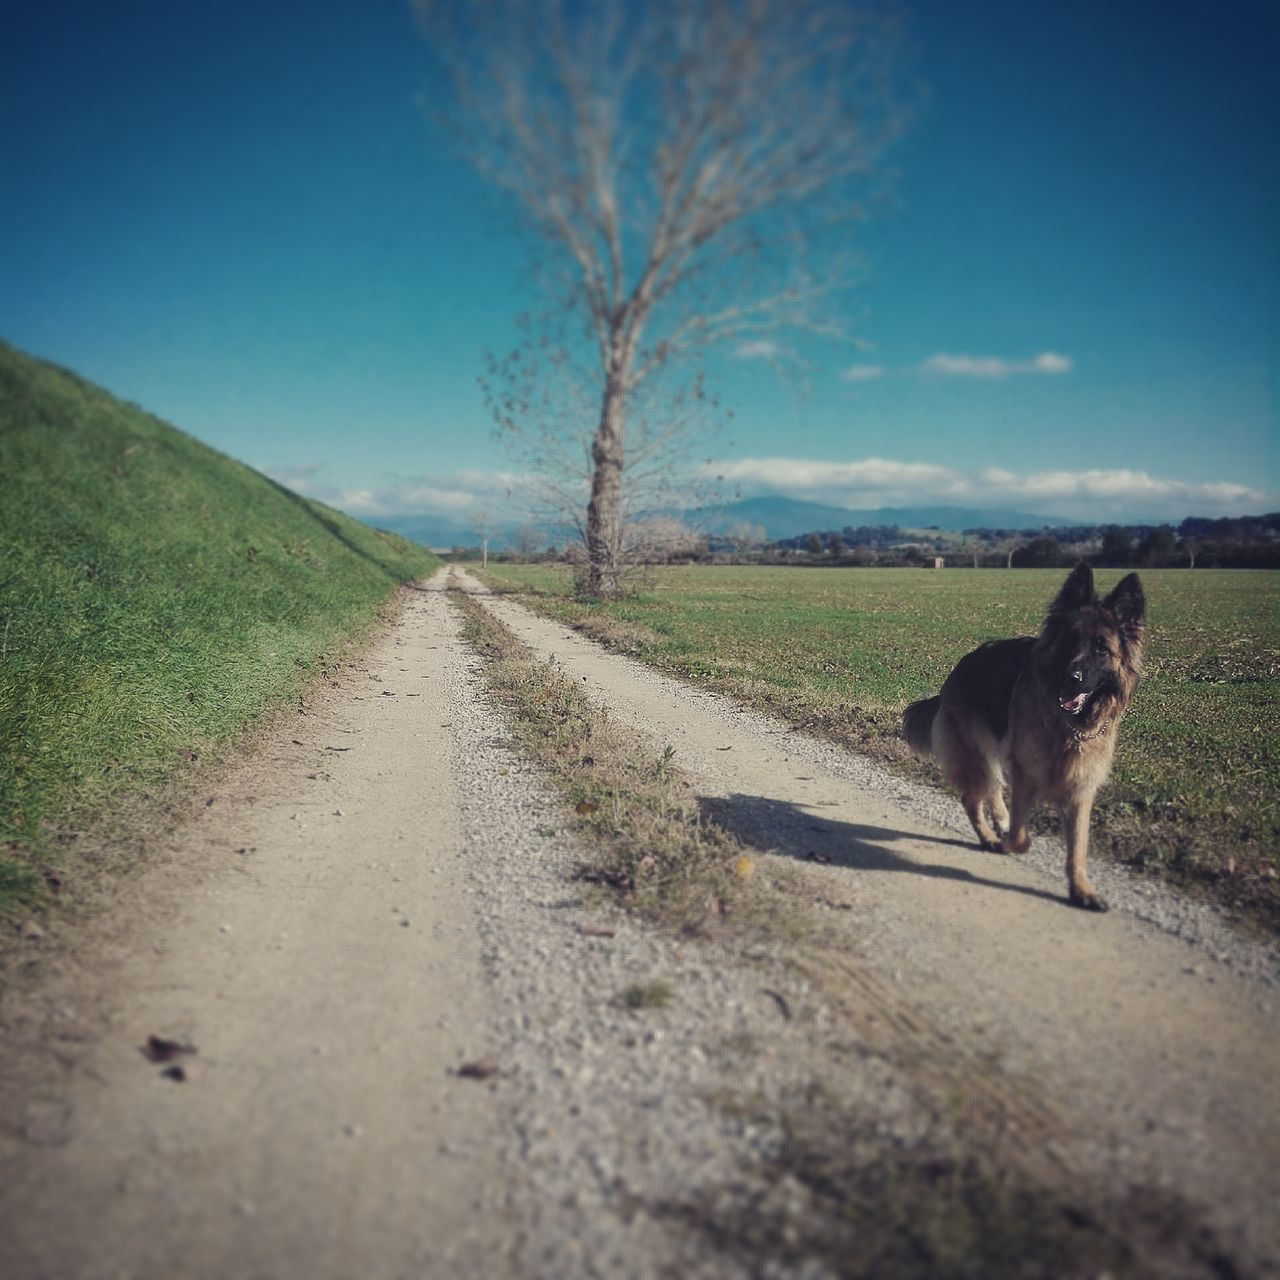 the way forward, diminishing perspective, domestic animals, road, animal themes, one animal, mammal, dog, transportation, nature, no people, landscape, outdoors, day, field, sky, pets, grass, tree